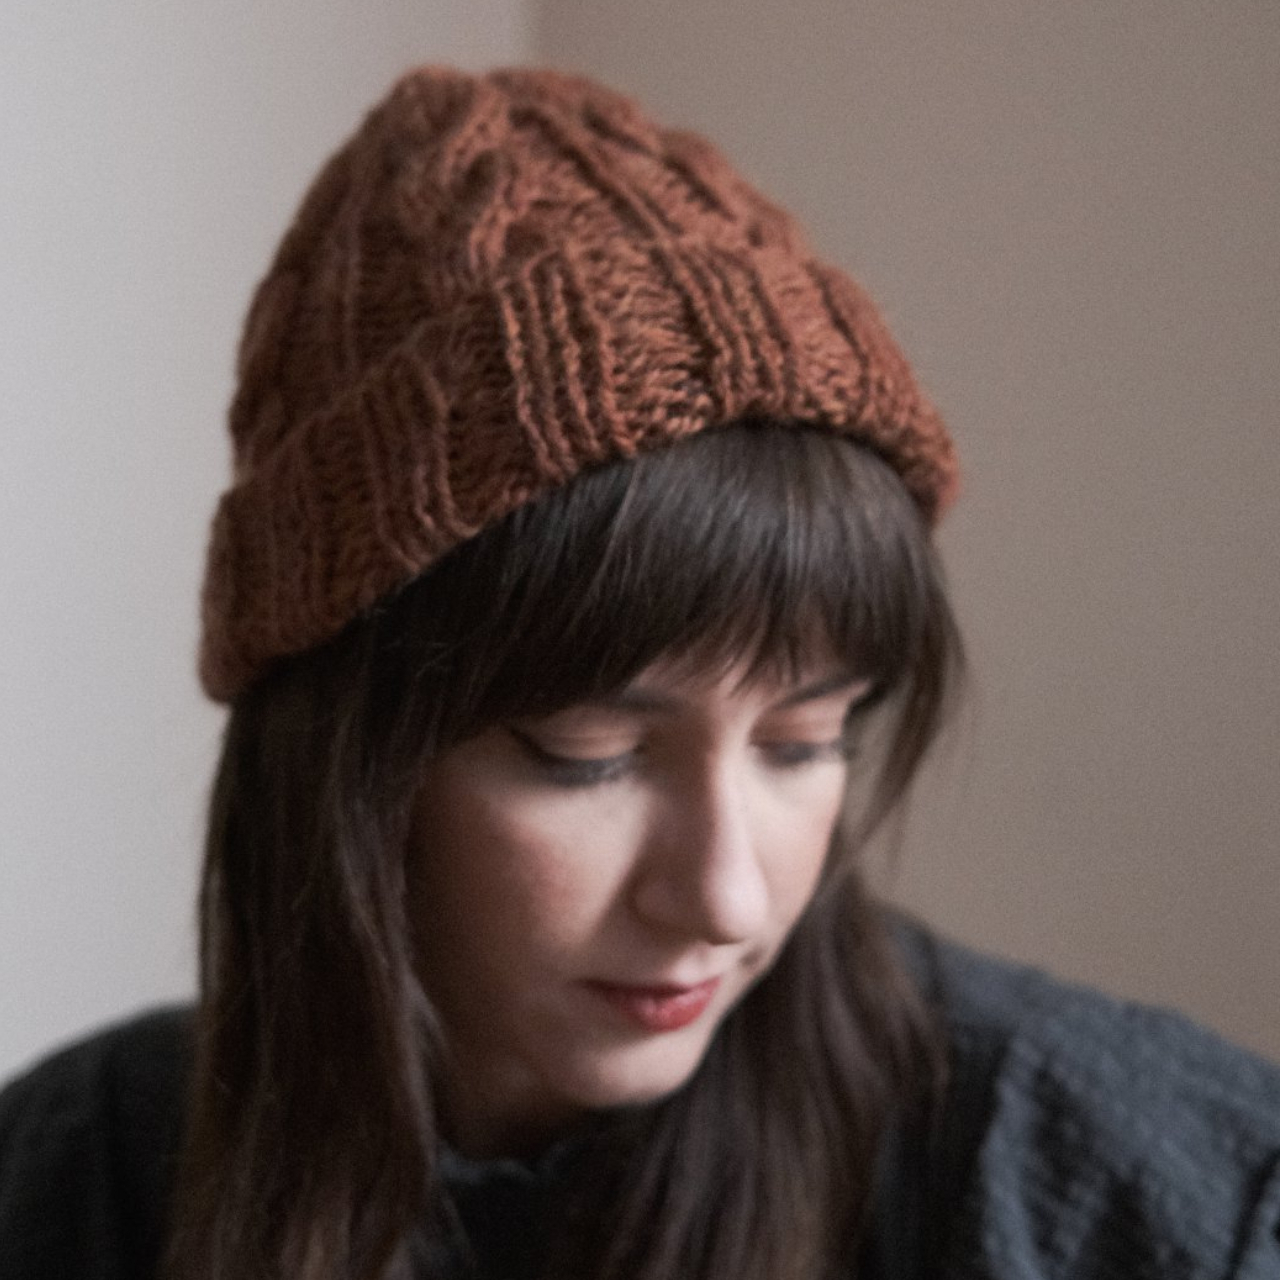 Product Image 1 - Handmade Cable Knit Beanie. Handmade